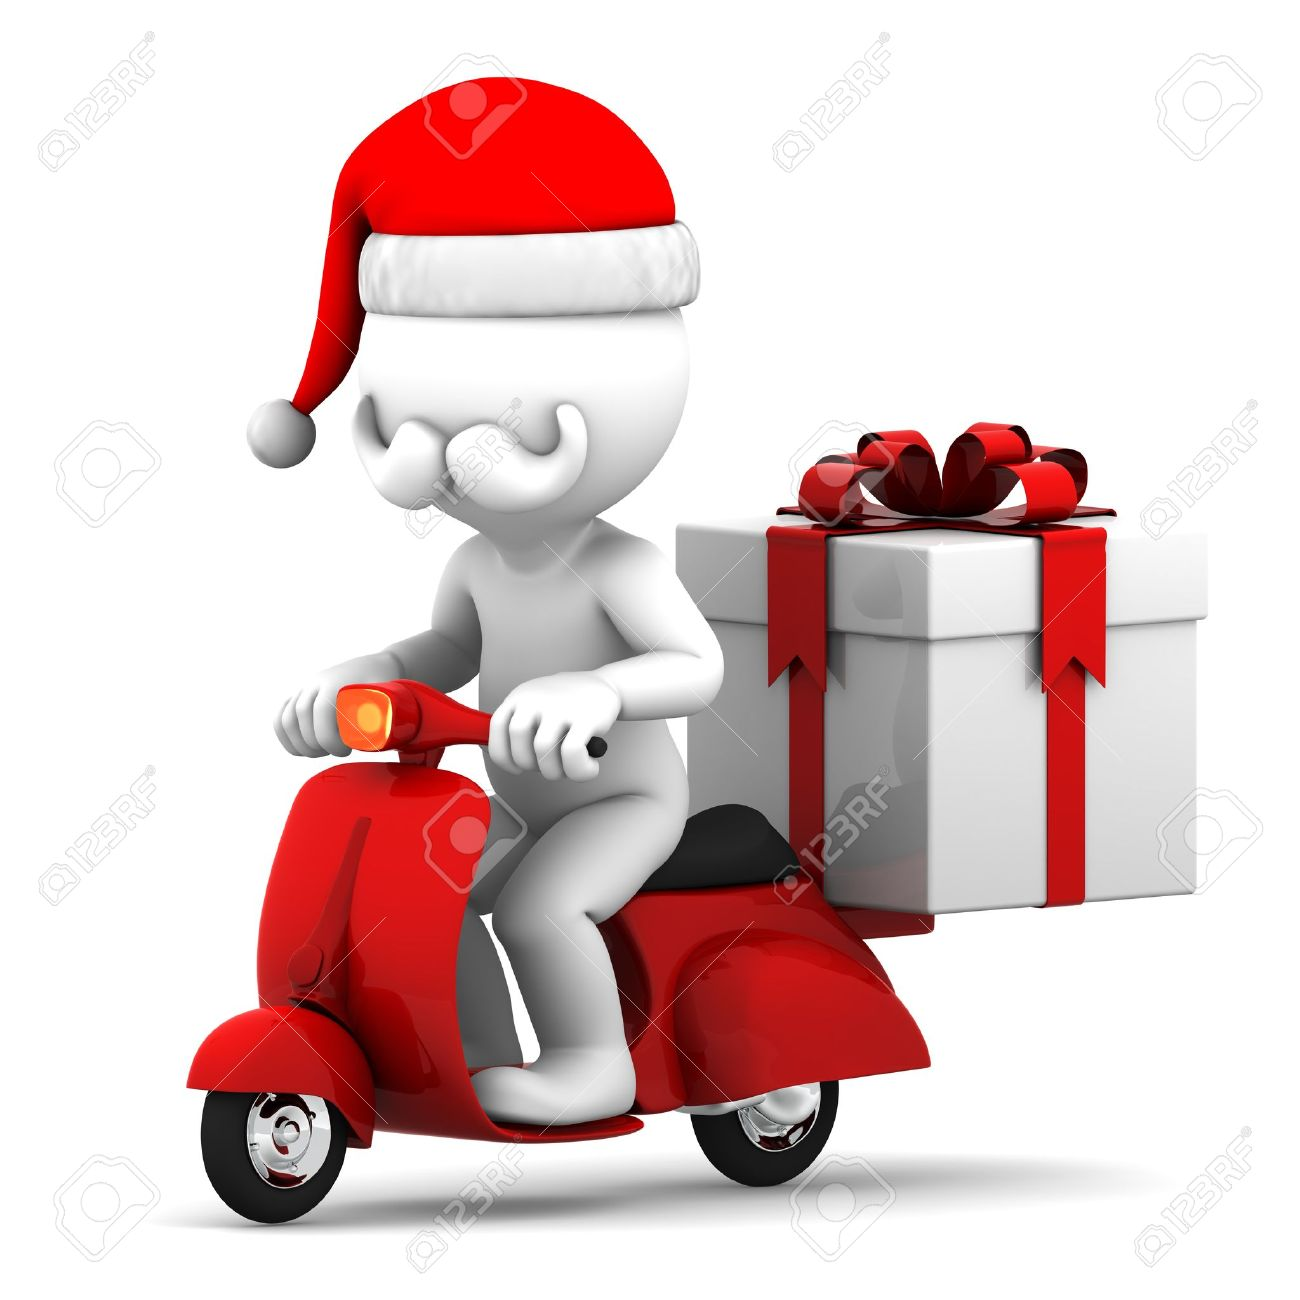 Santa Claus Delivering Christmas Gifts On A Scooter Stock Photo ...